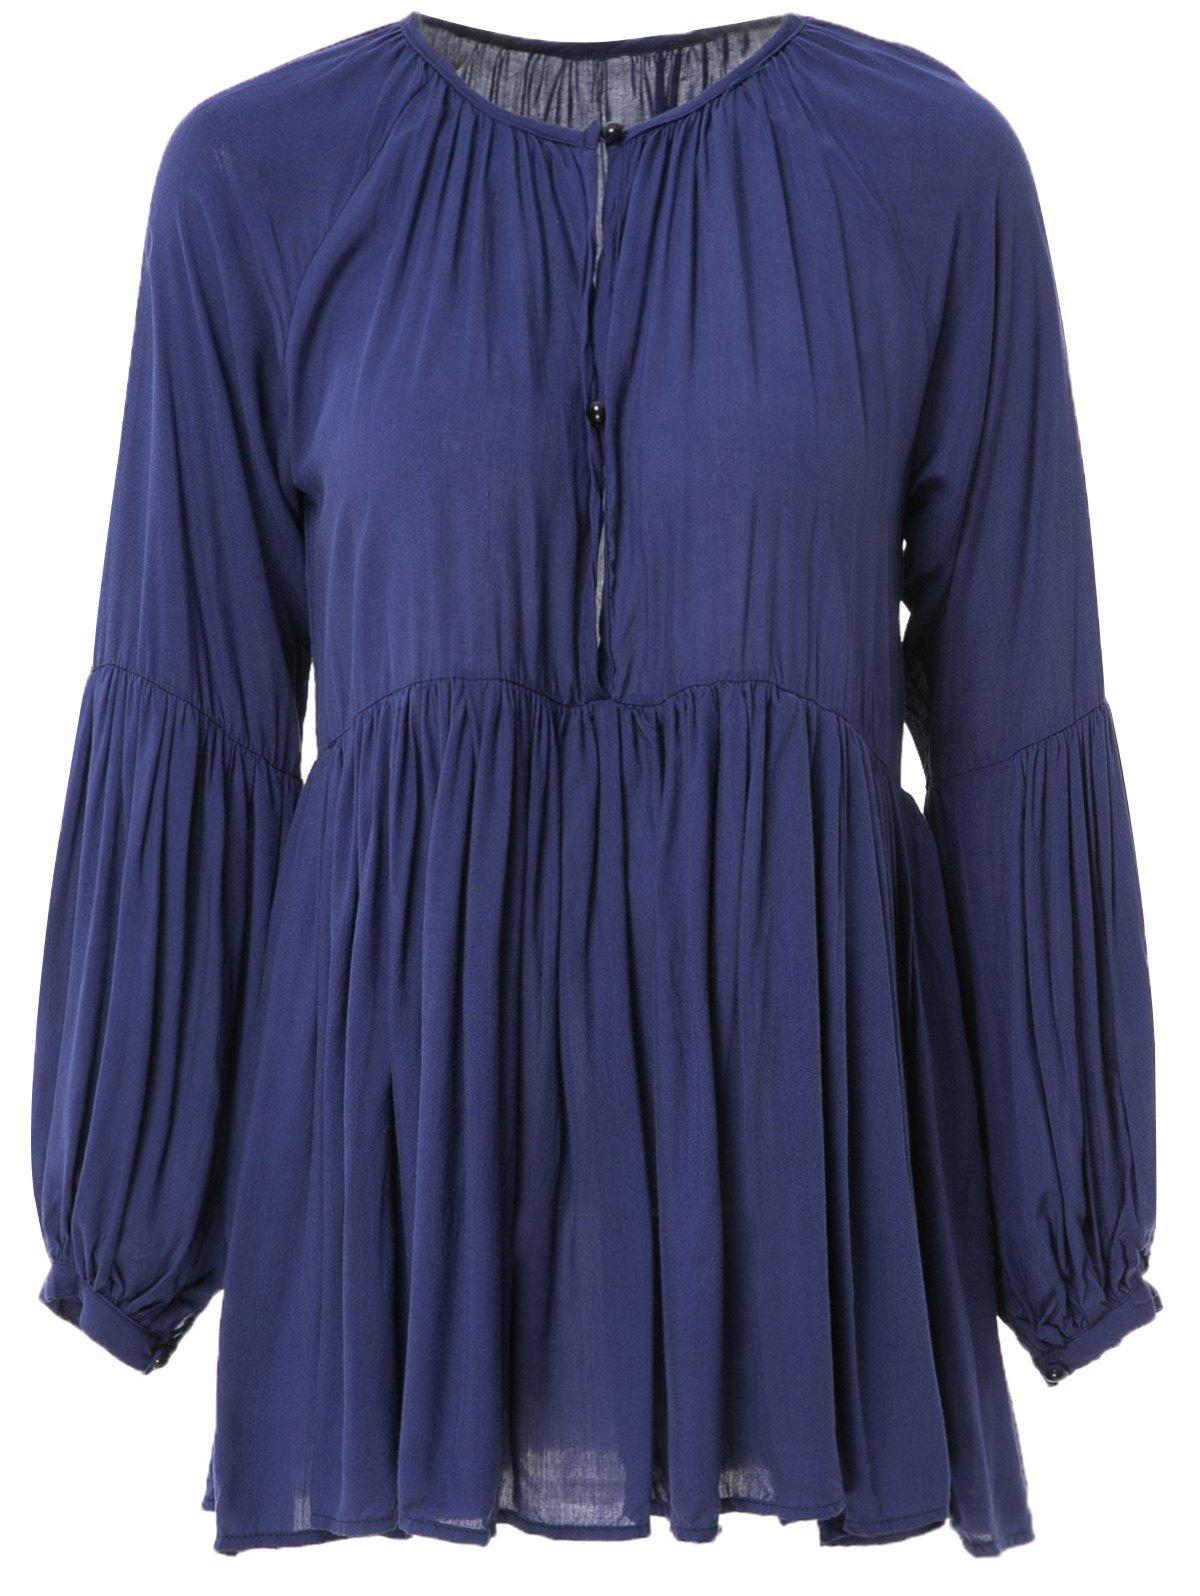 Stylish Long Sleeve Plunging Neck Pleated Solid Color Women's Mini Dress - DEEP BLUE L